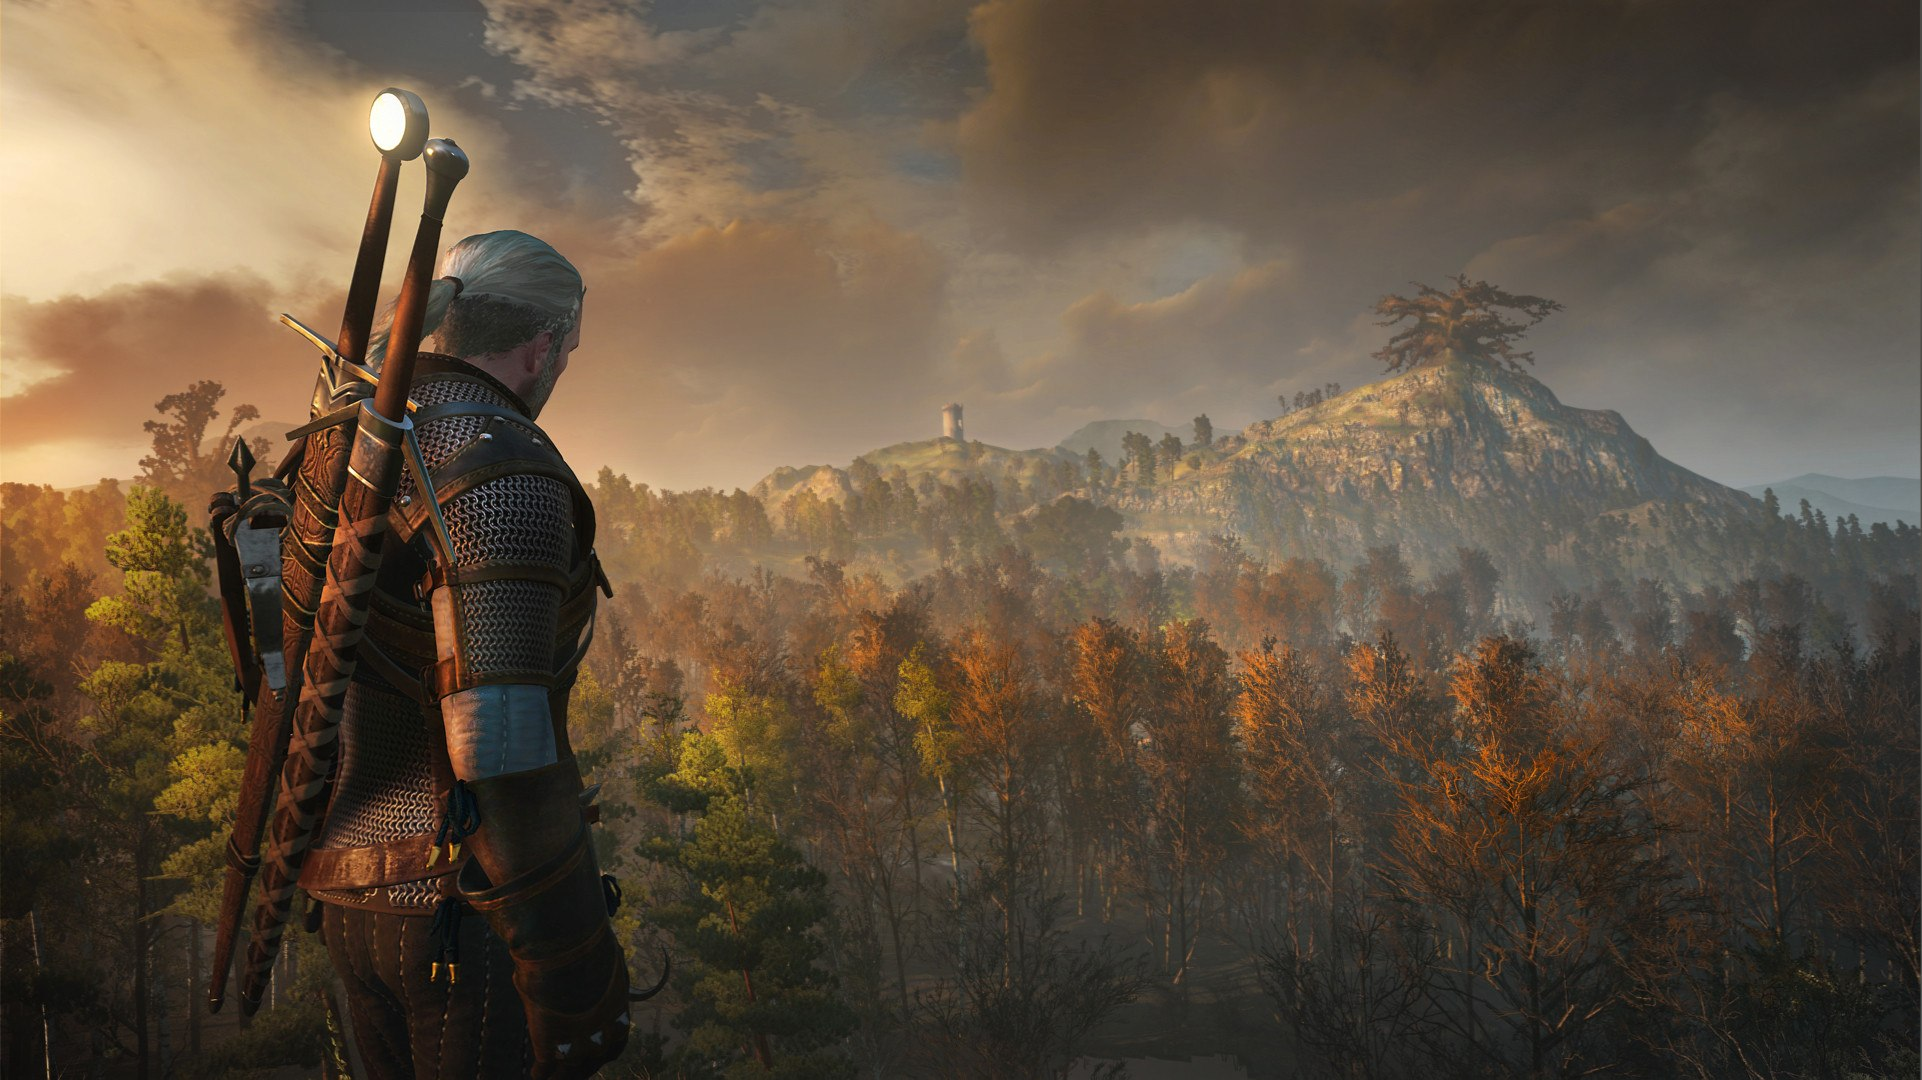 Geralt Overlooking A Wide Vista